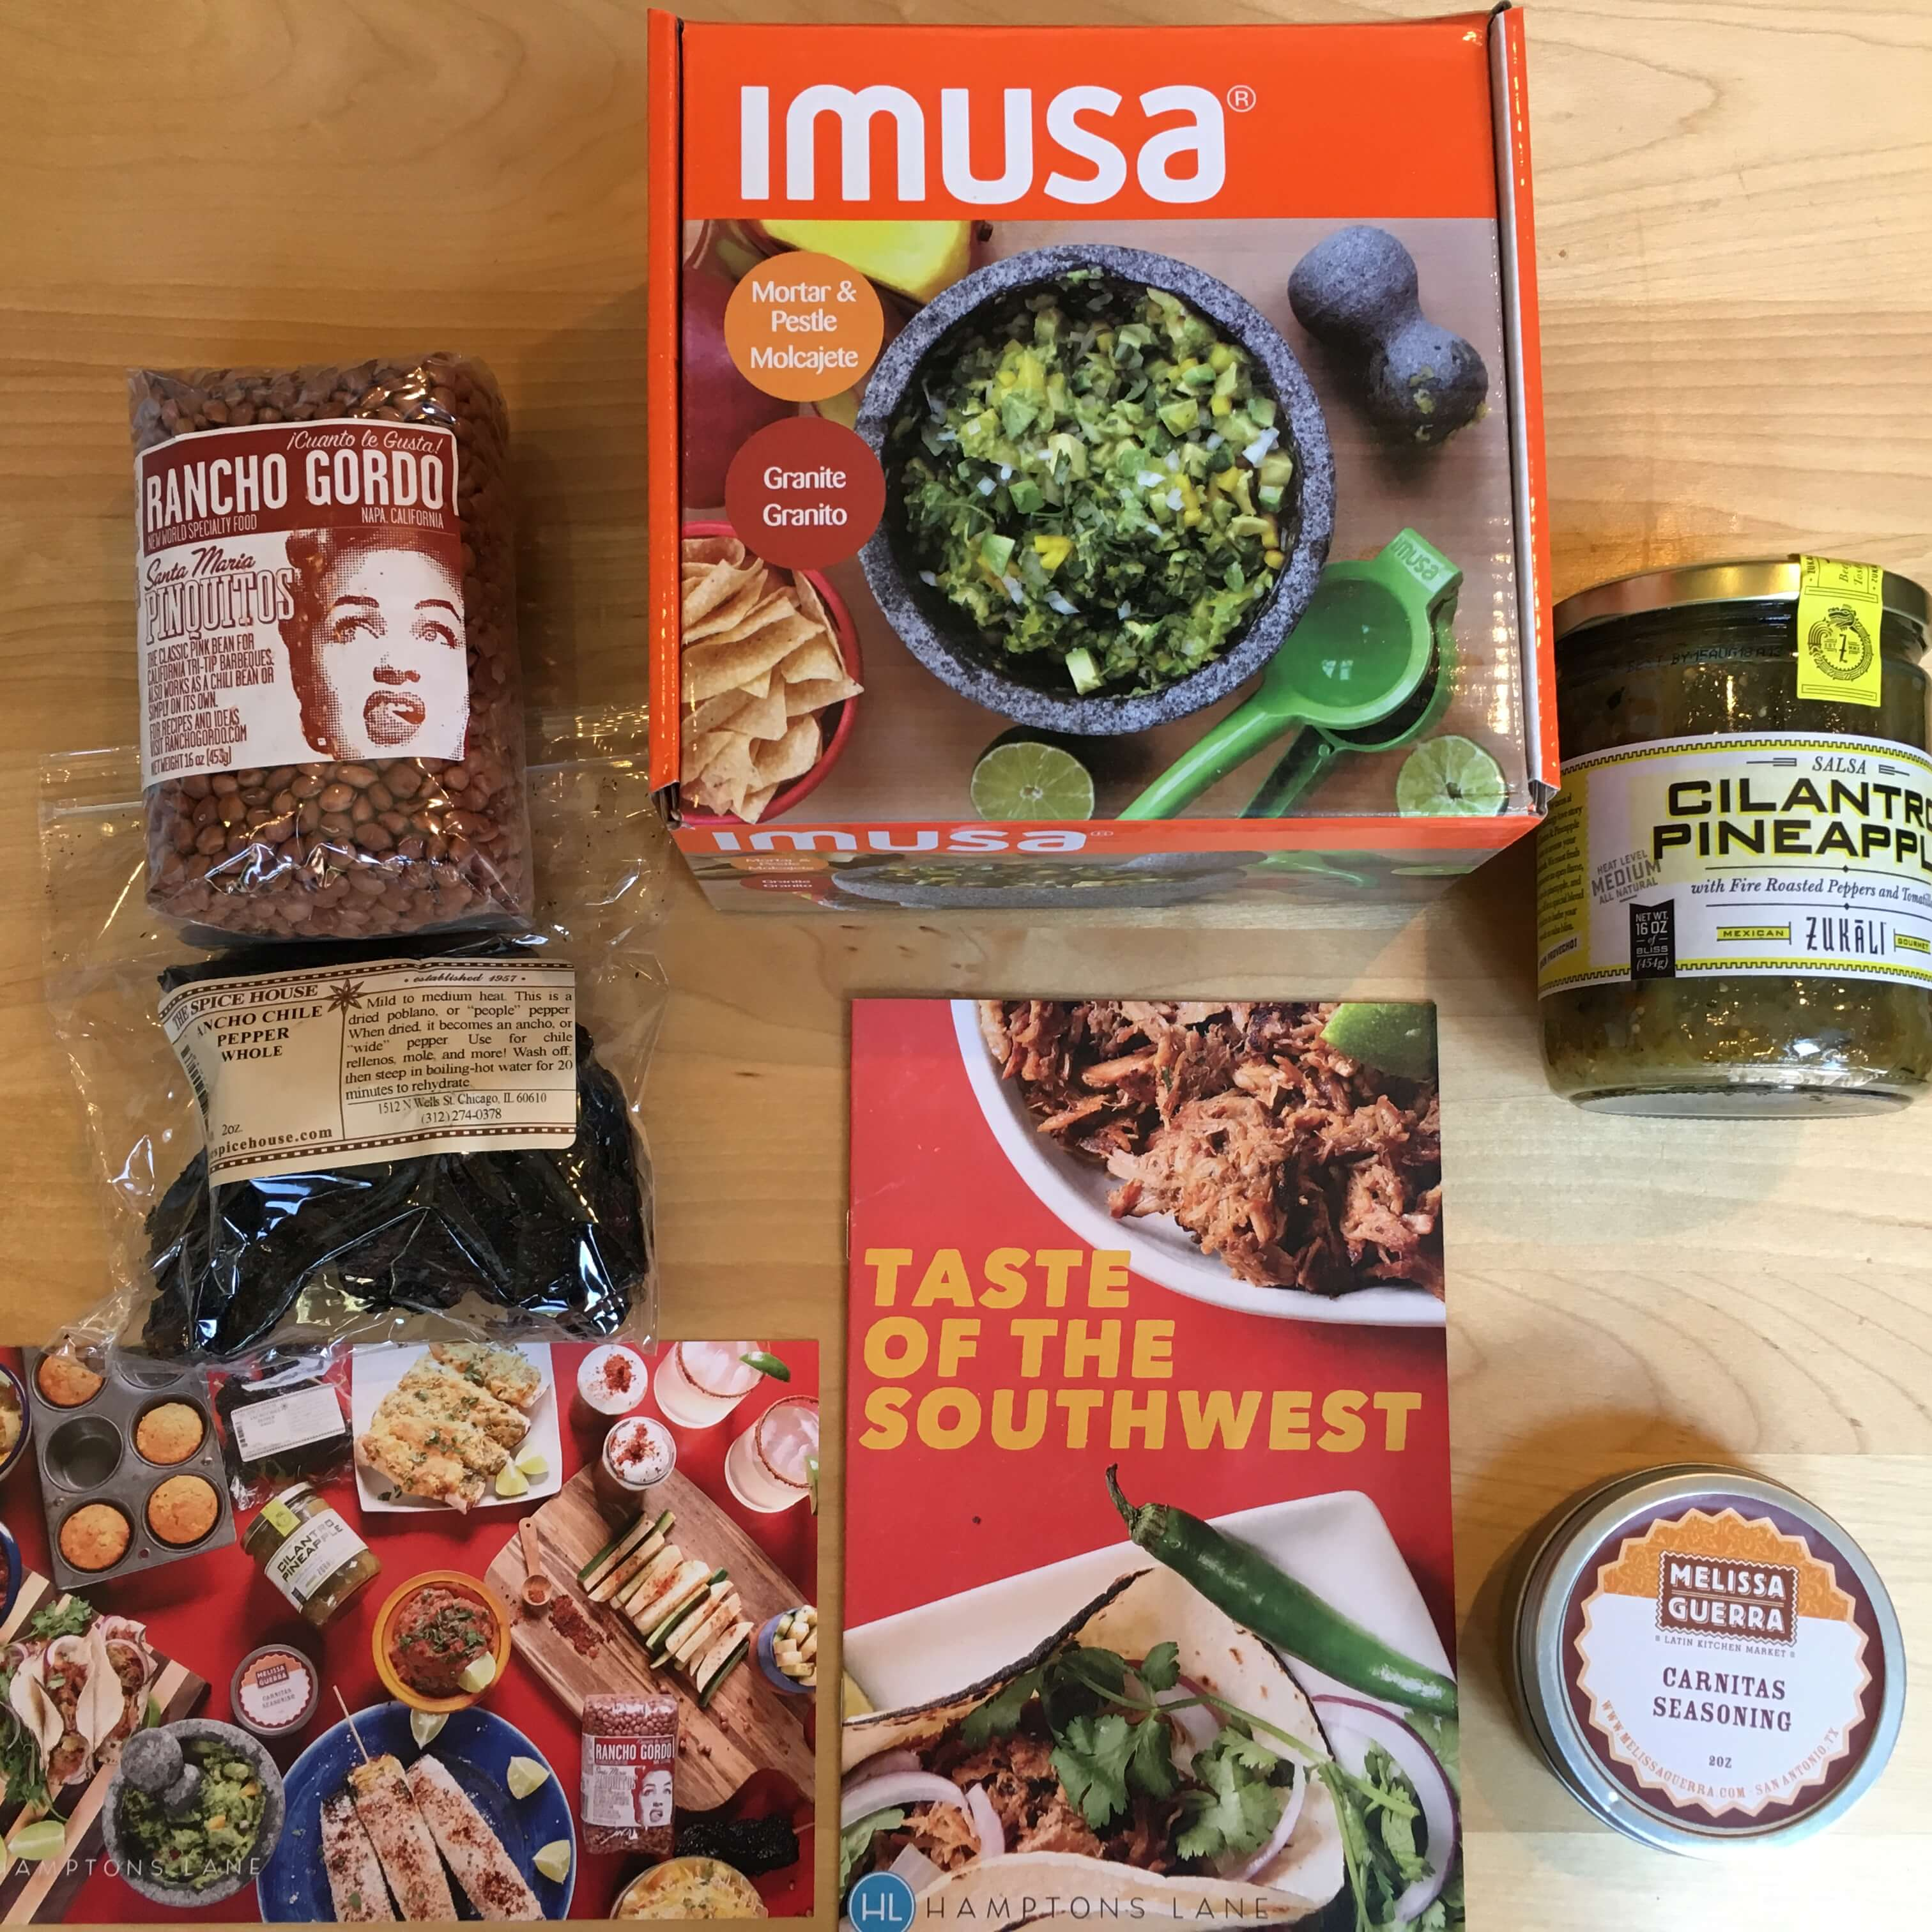 Hamptons Lane Subscription Box Review & Coupon: Taste of the Southwest Box